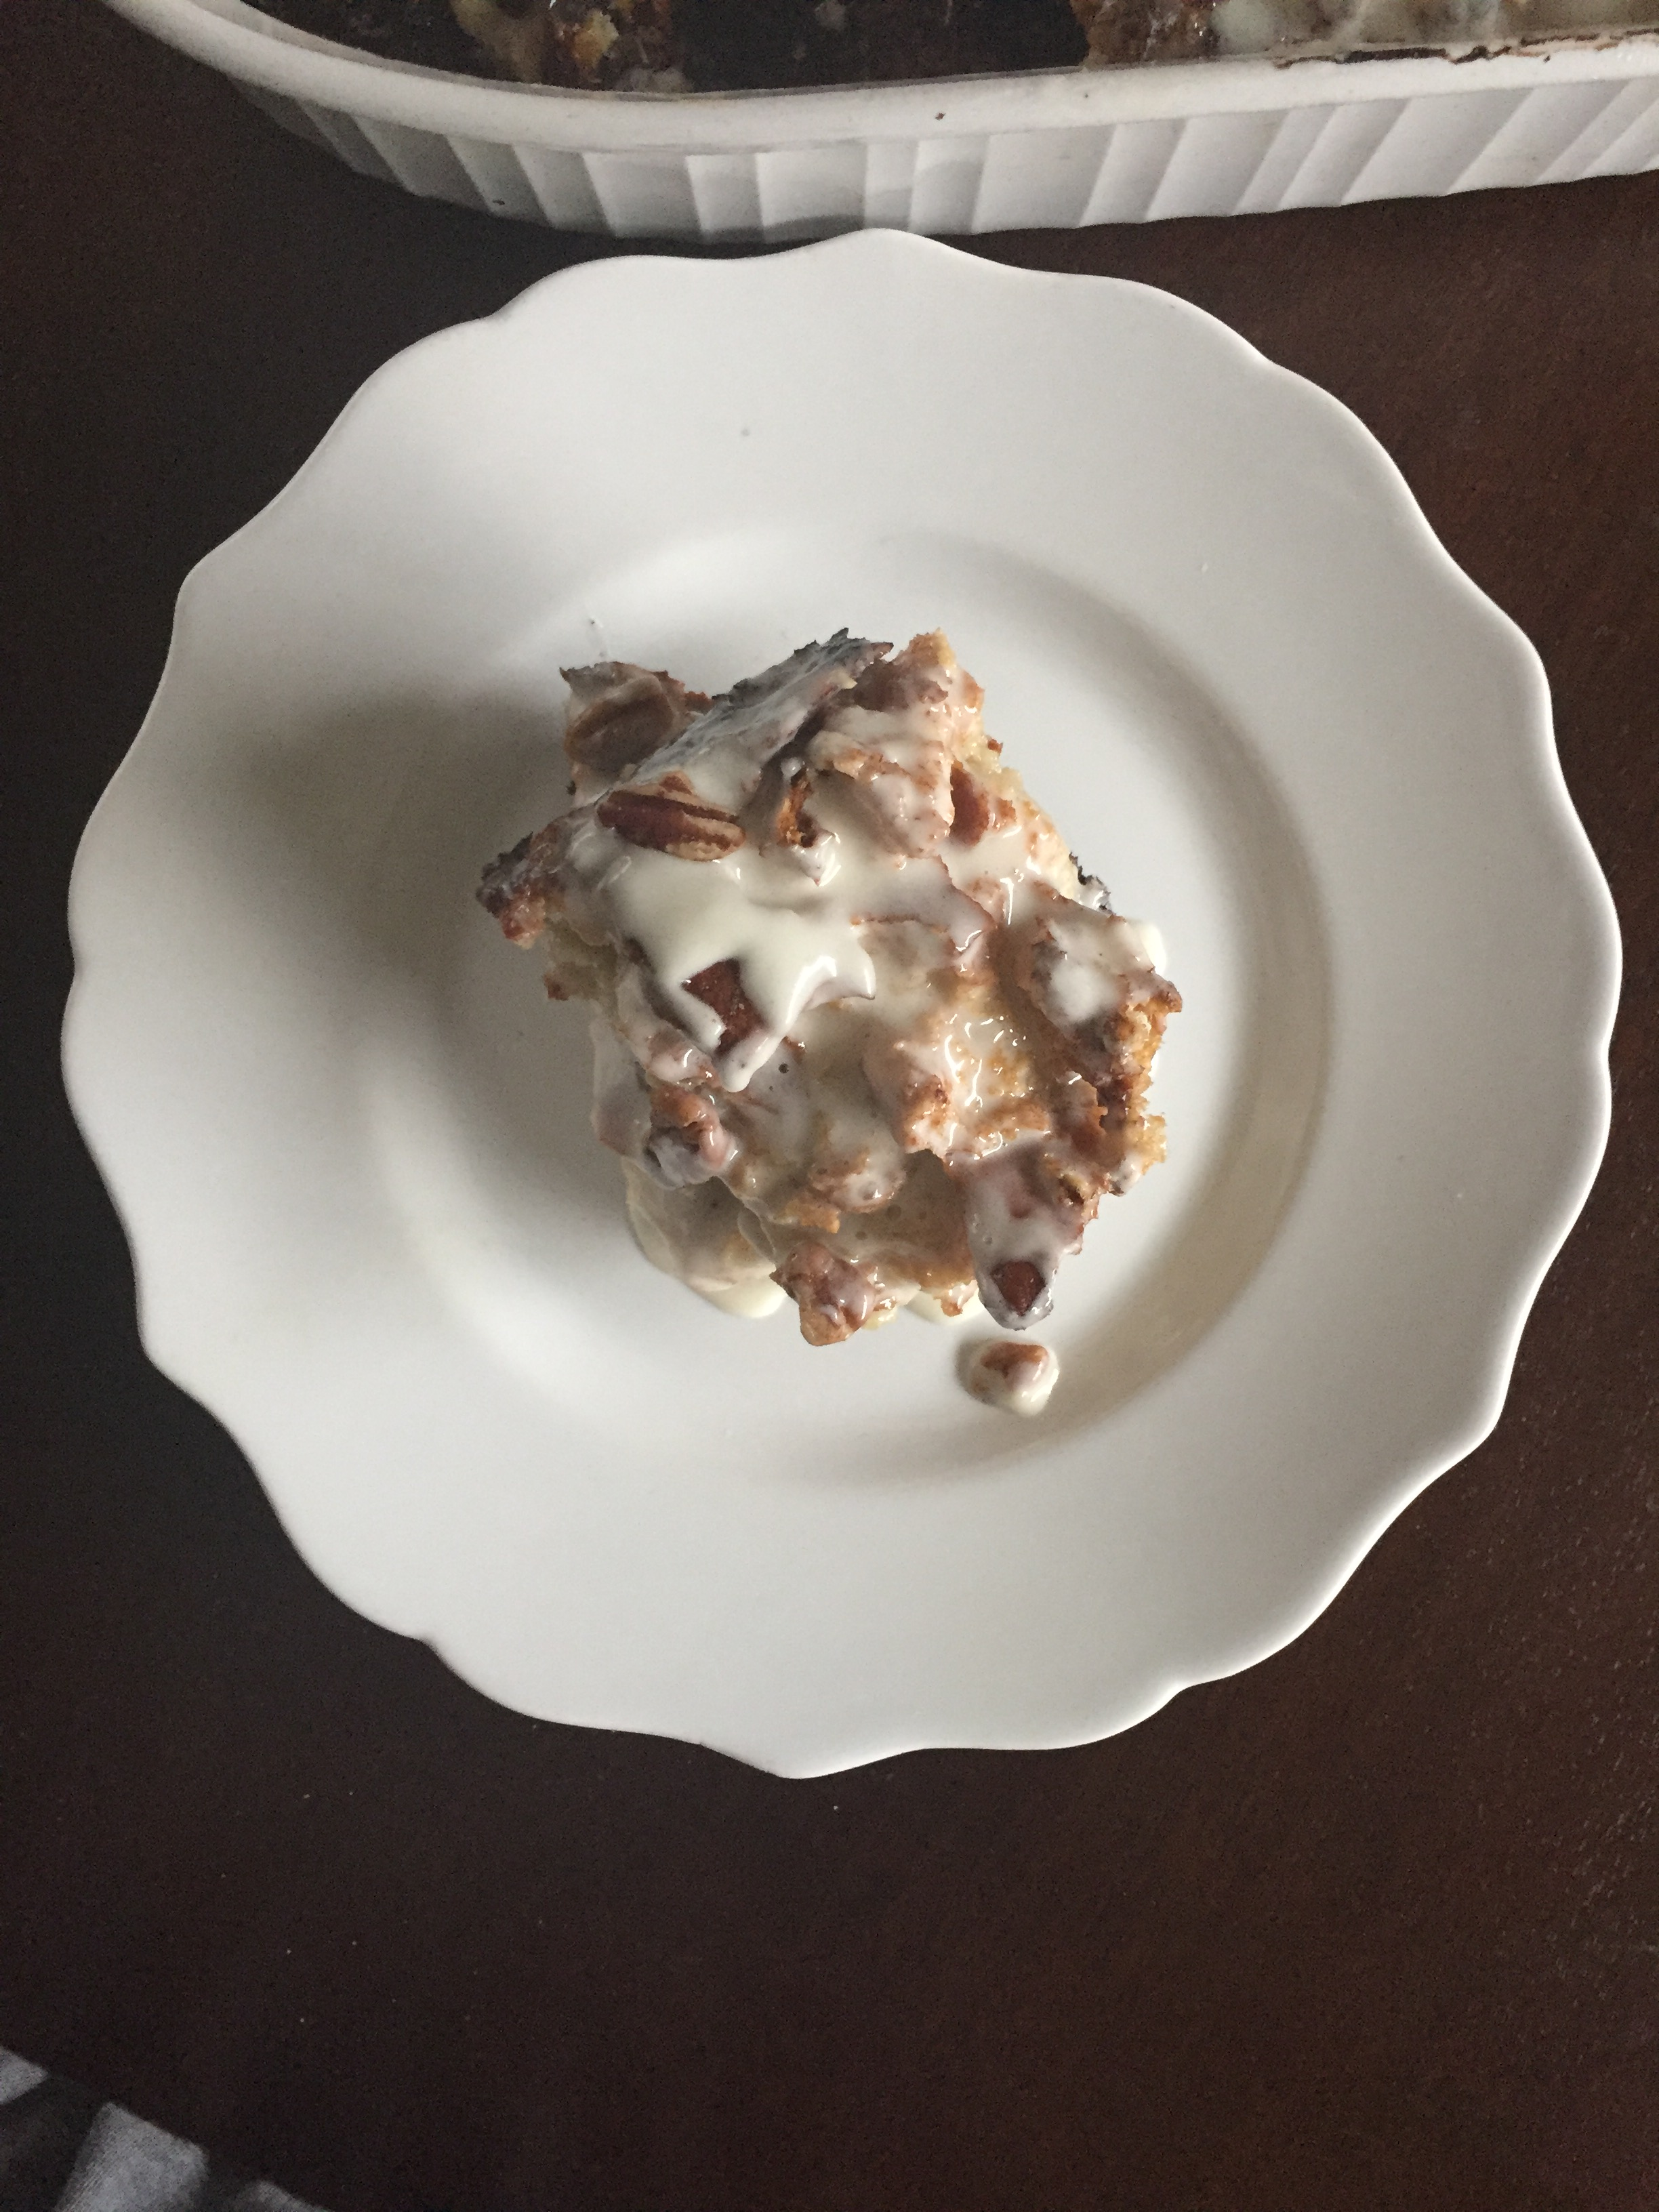 cinnamon roll bread pudding with frosting glaze over top